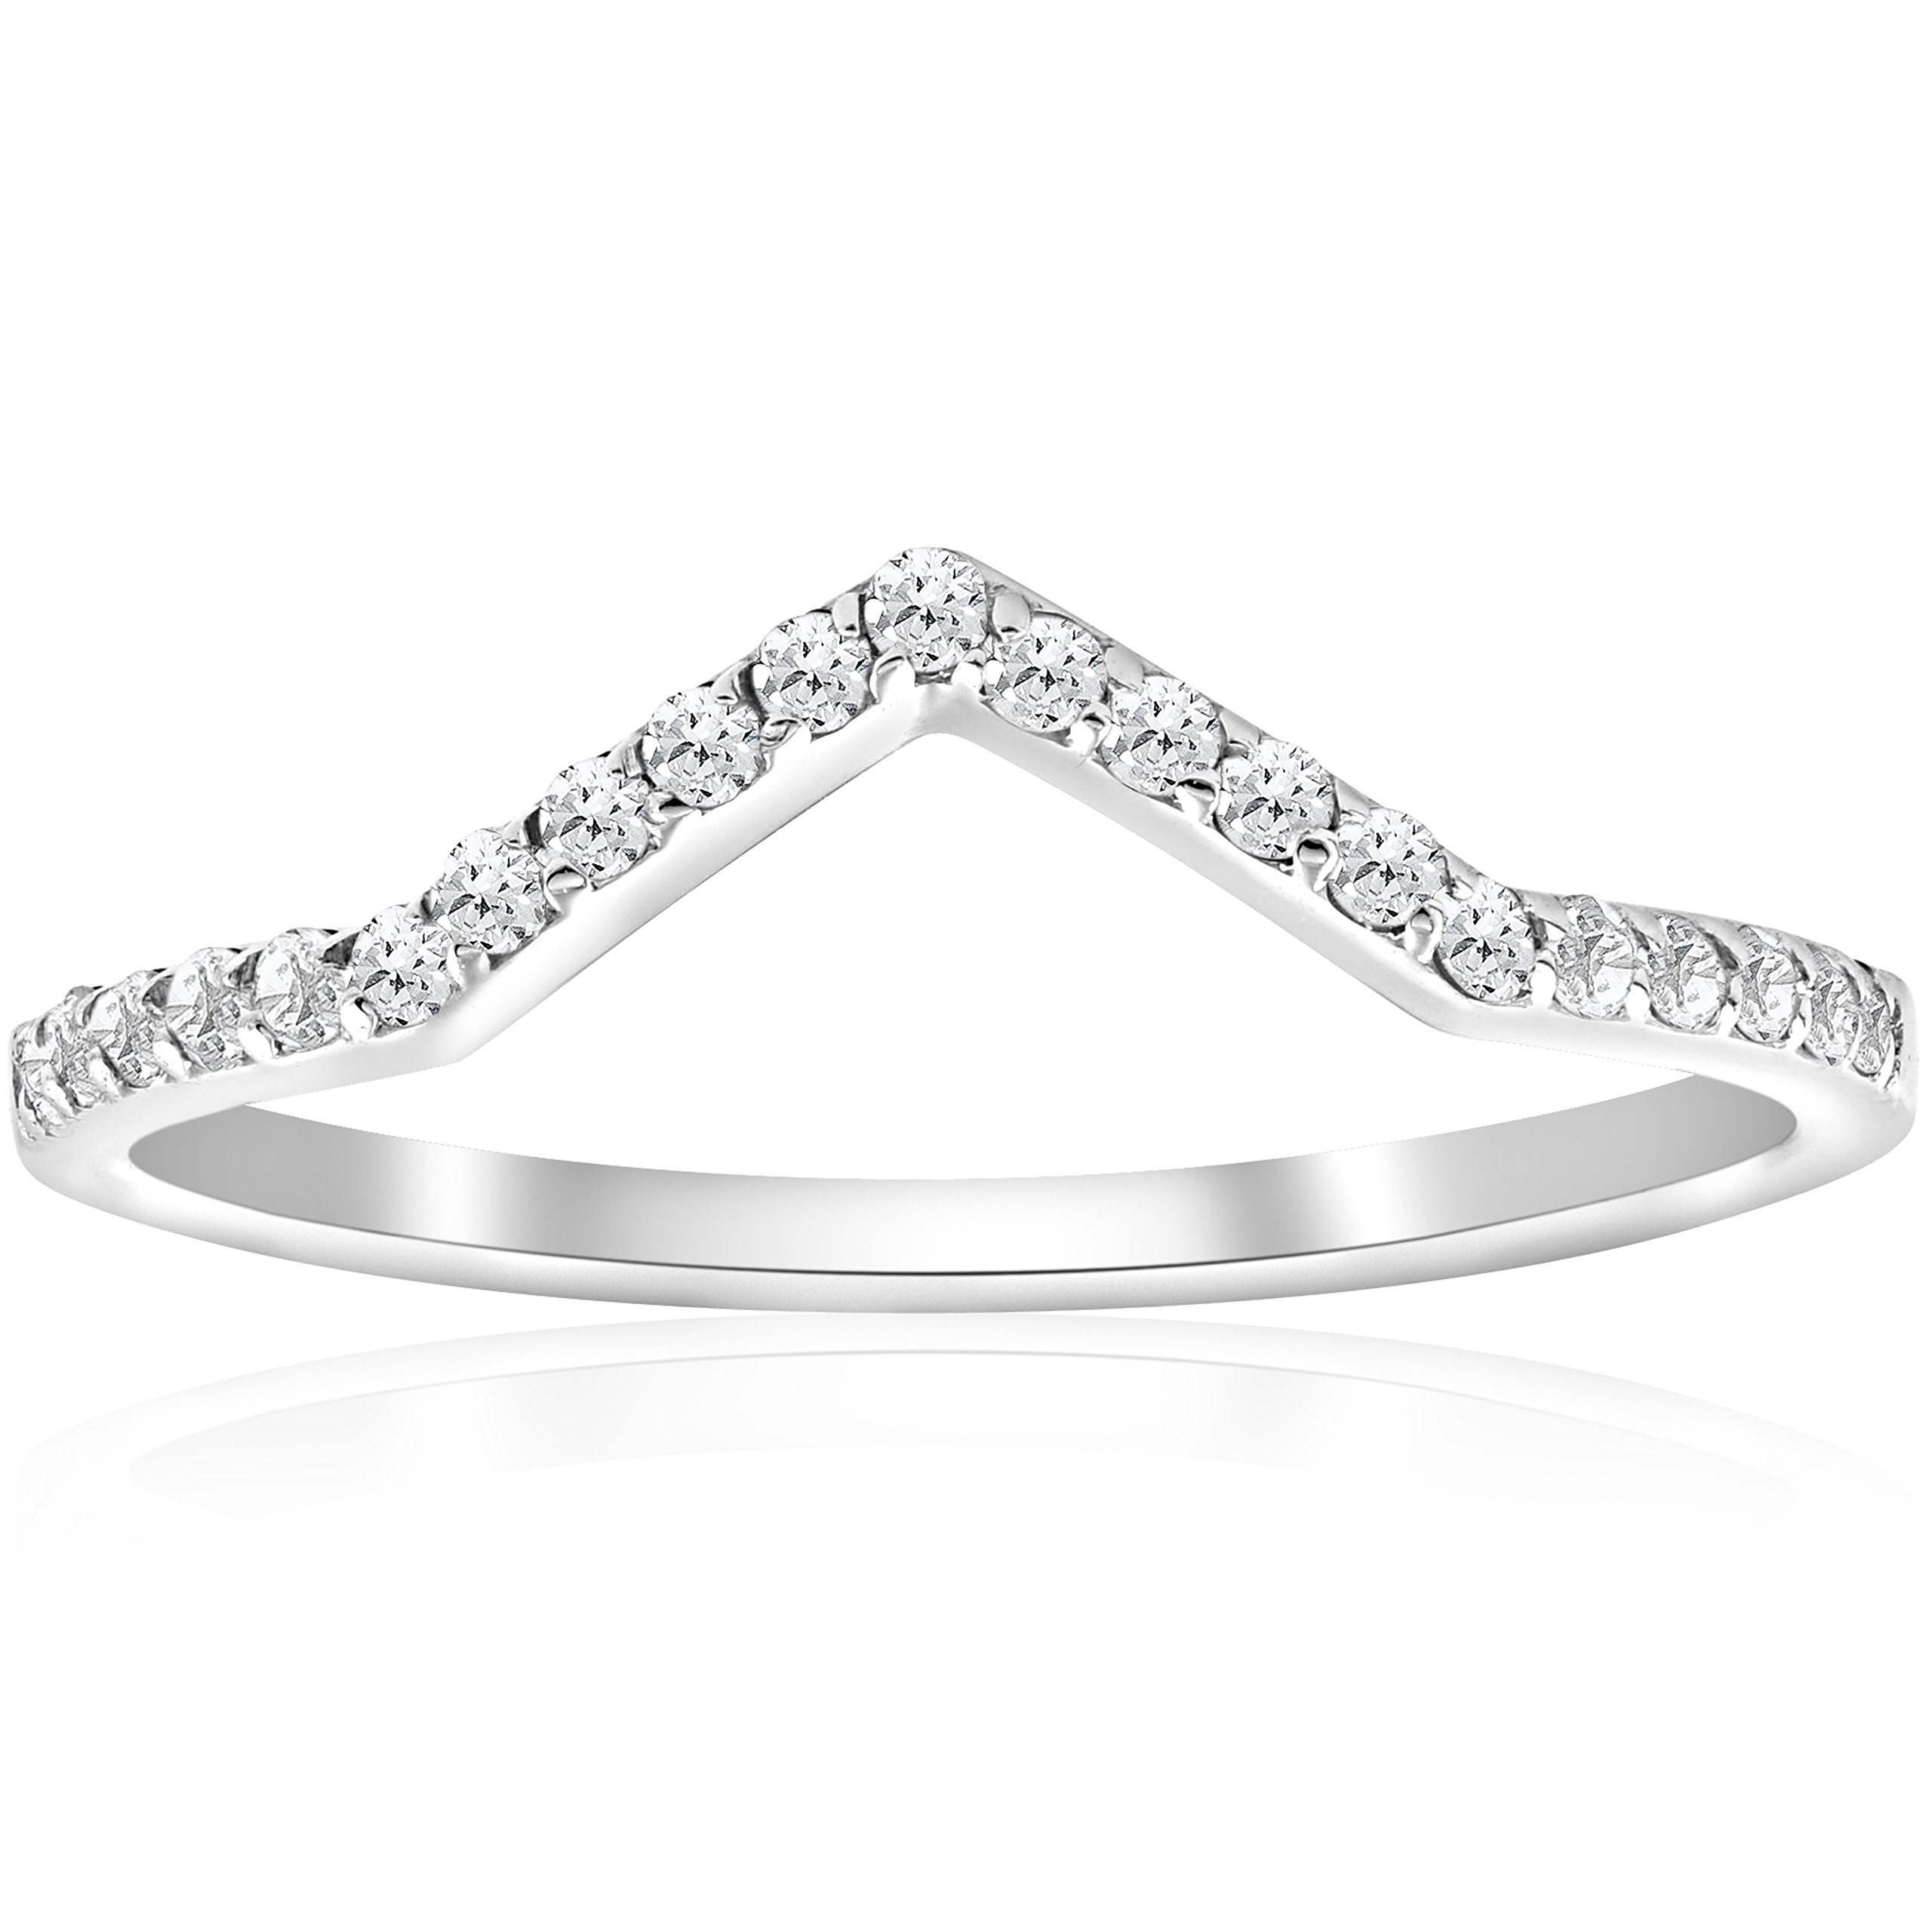 1/4ct Diamond Curved V Shape Ring Stackable Wedding Band 10k White Gold - Size 8 by P3 POMPEII3